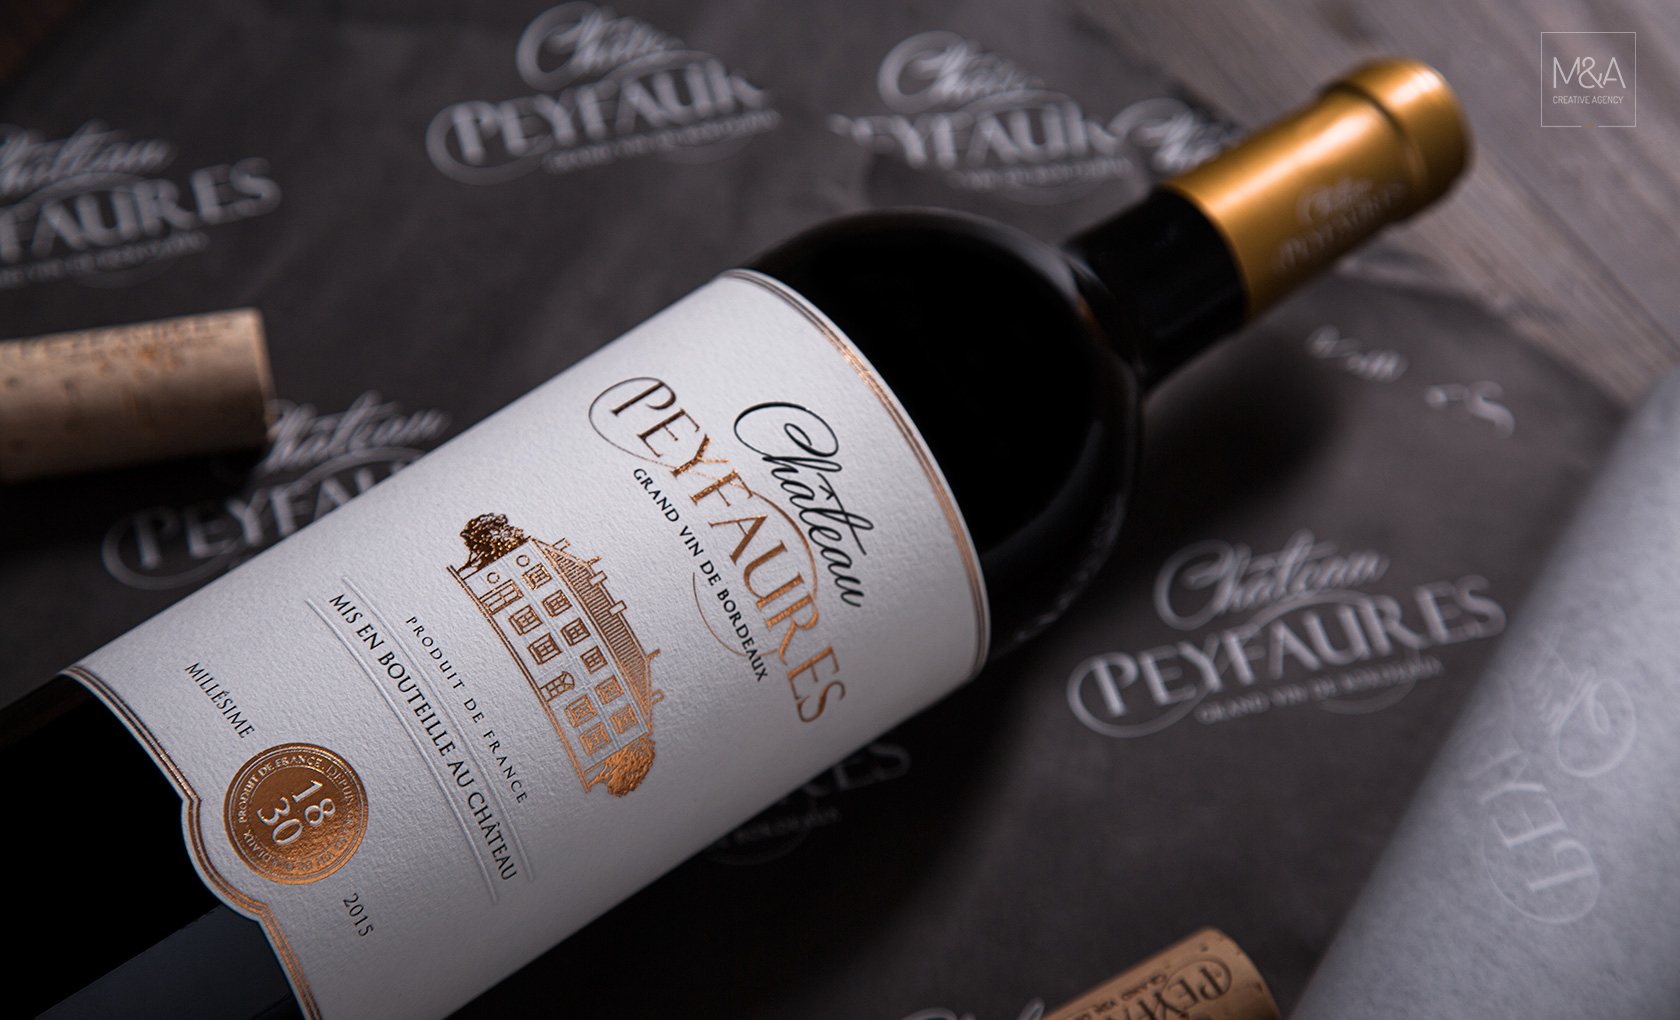 Luxury Fine Wine Rebranding and Packaging Design of Château Peyfaures Bordeaux